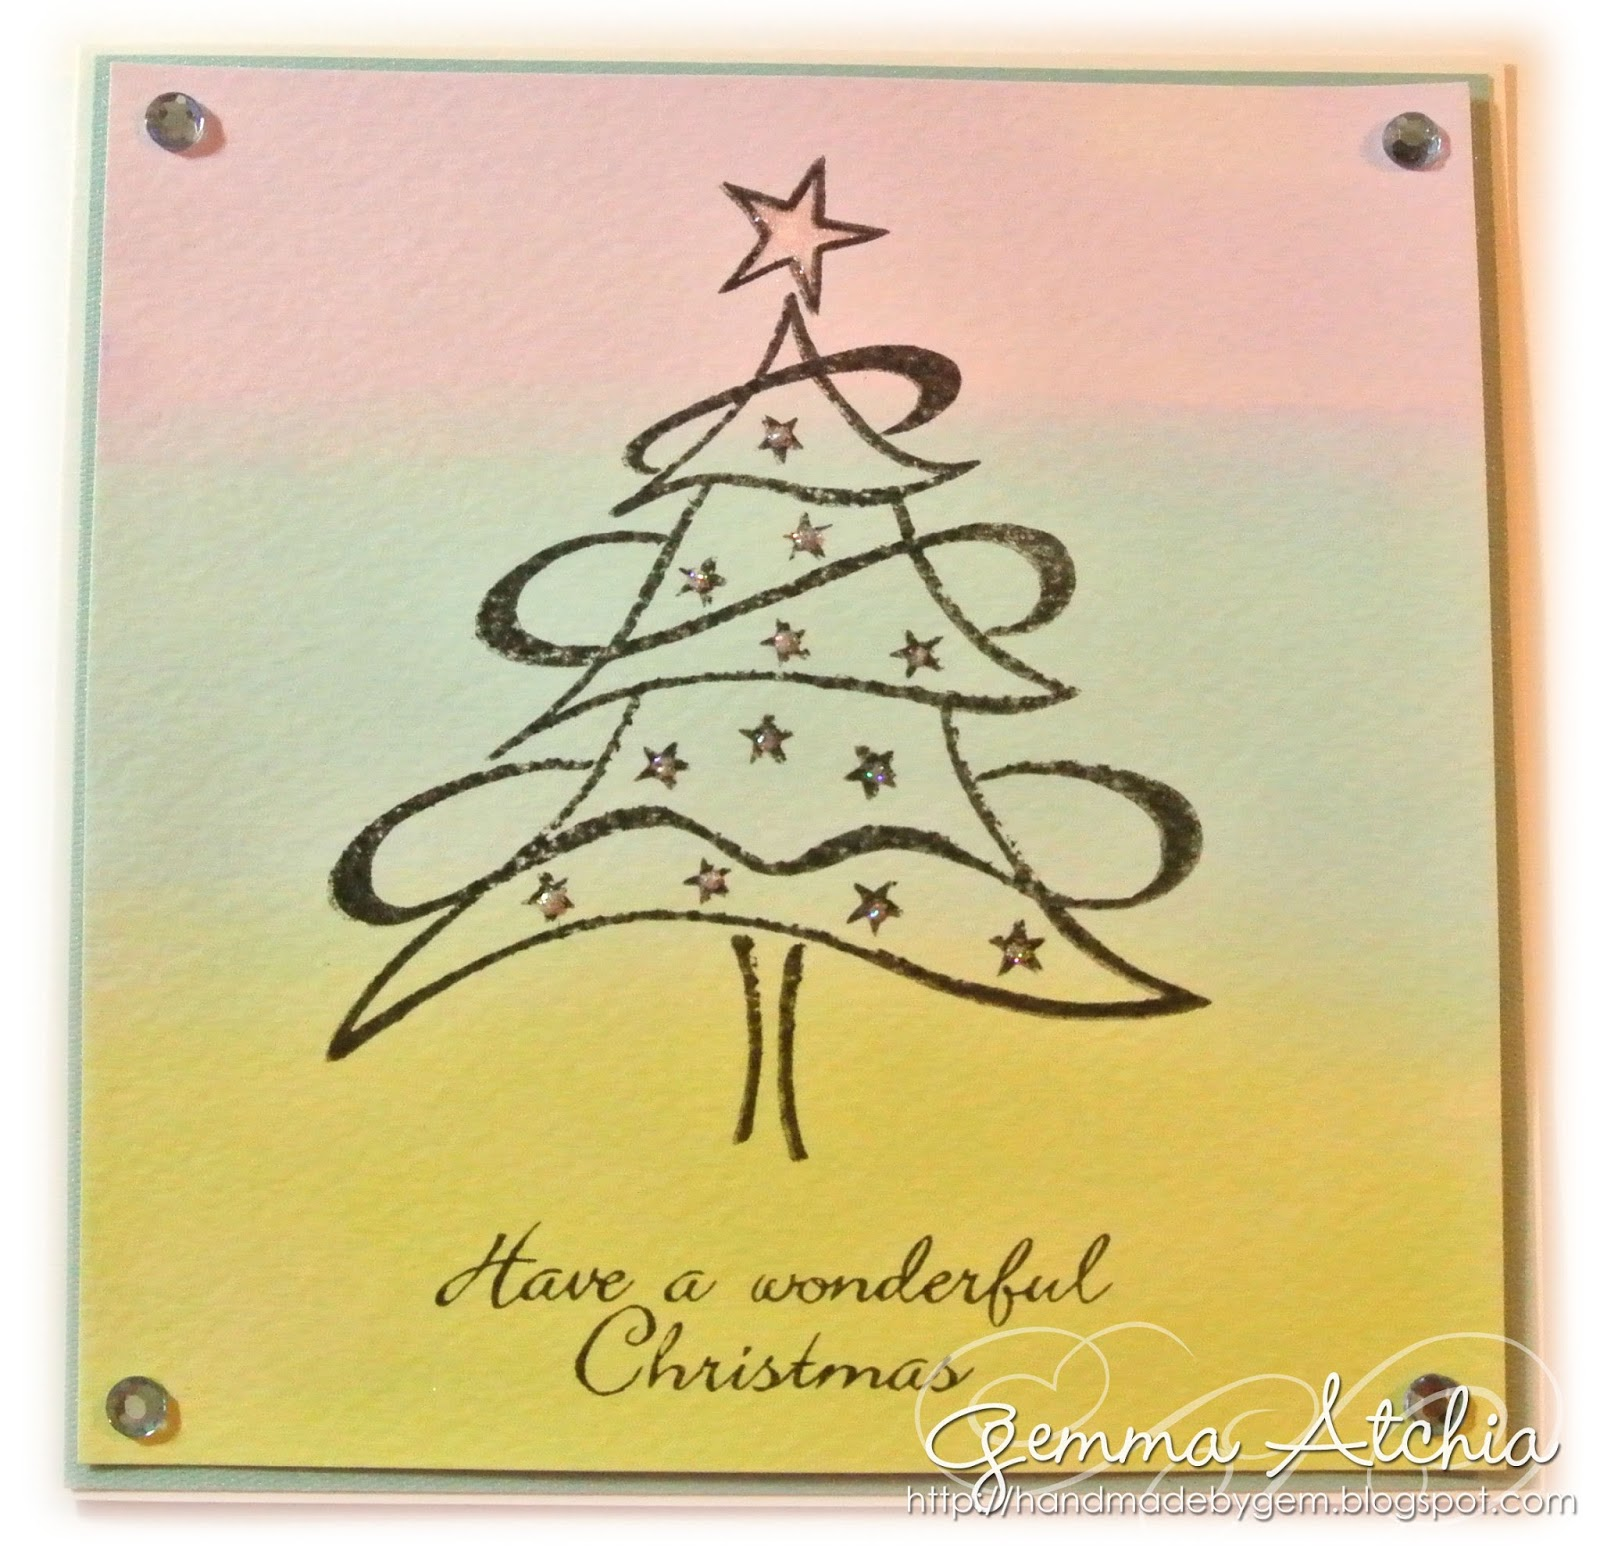 Christmas, Aquatint, Tree, Star, pearls, pastels